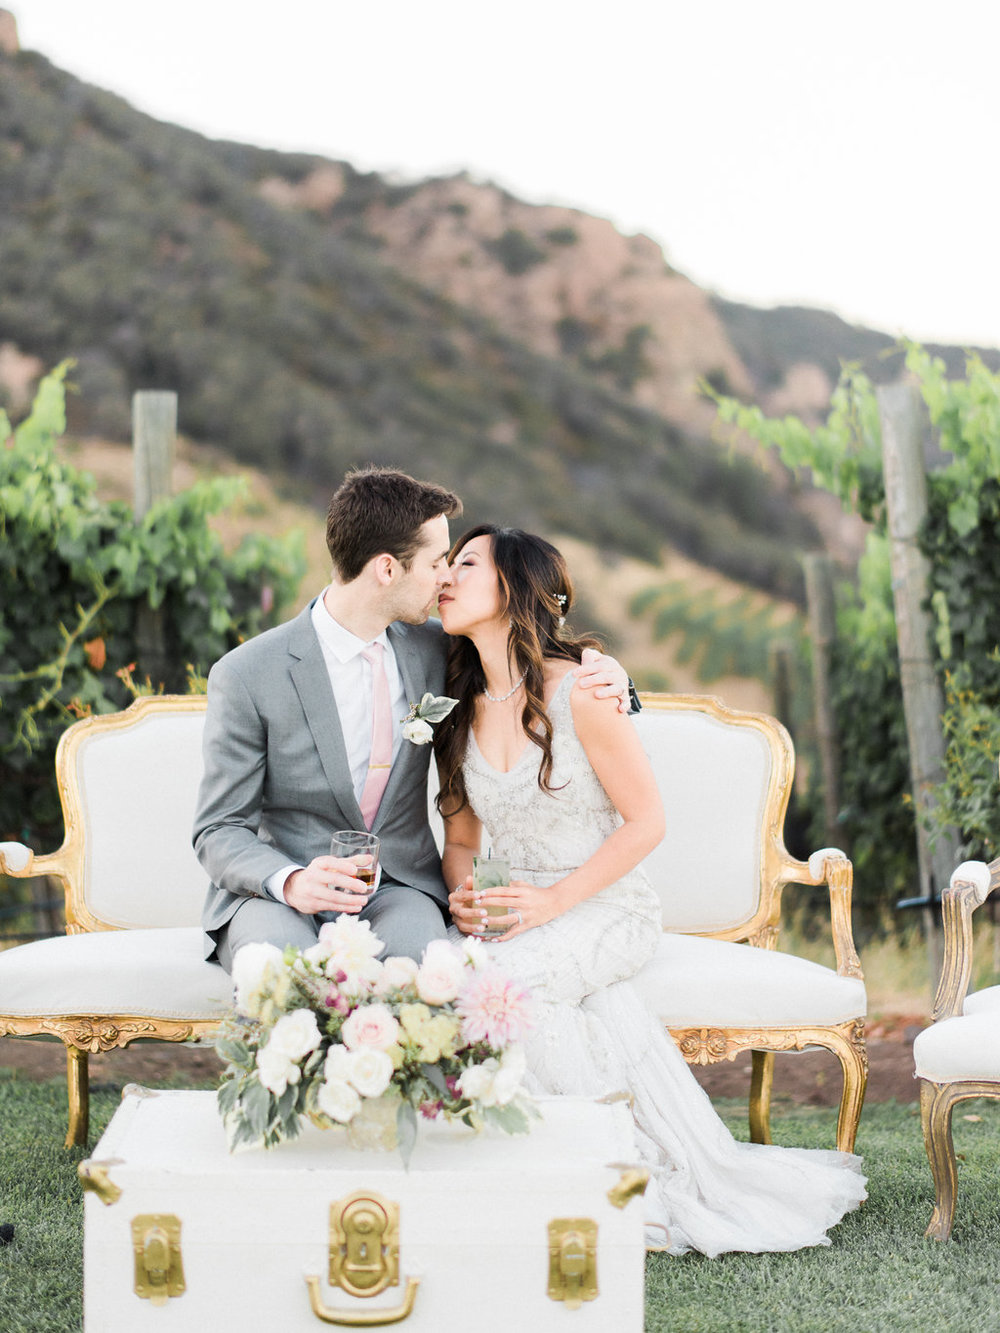 jennyanddevin-wedding-988.jpg